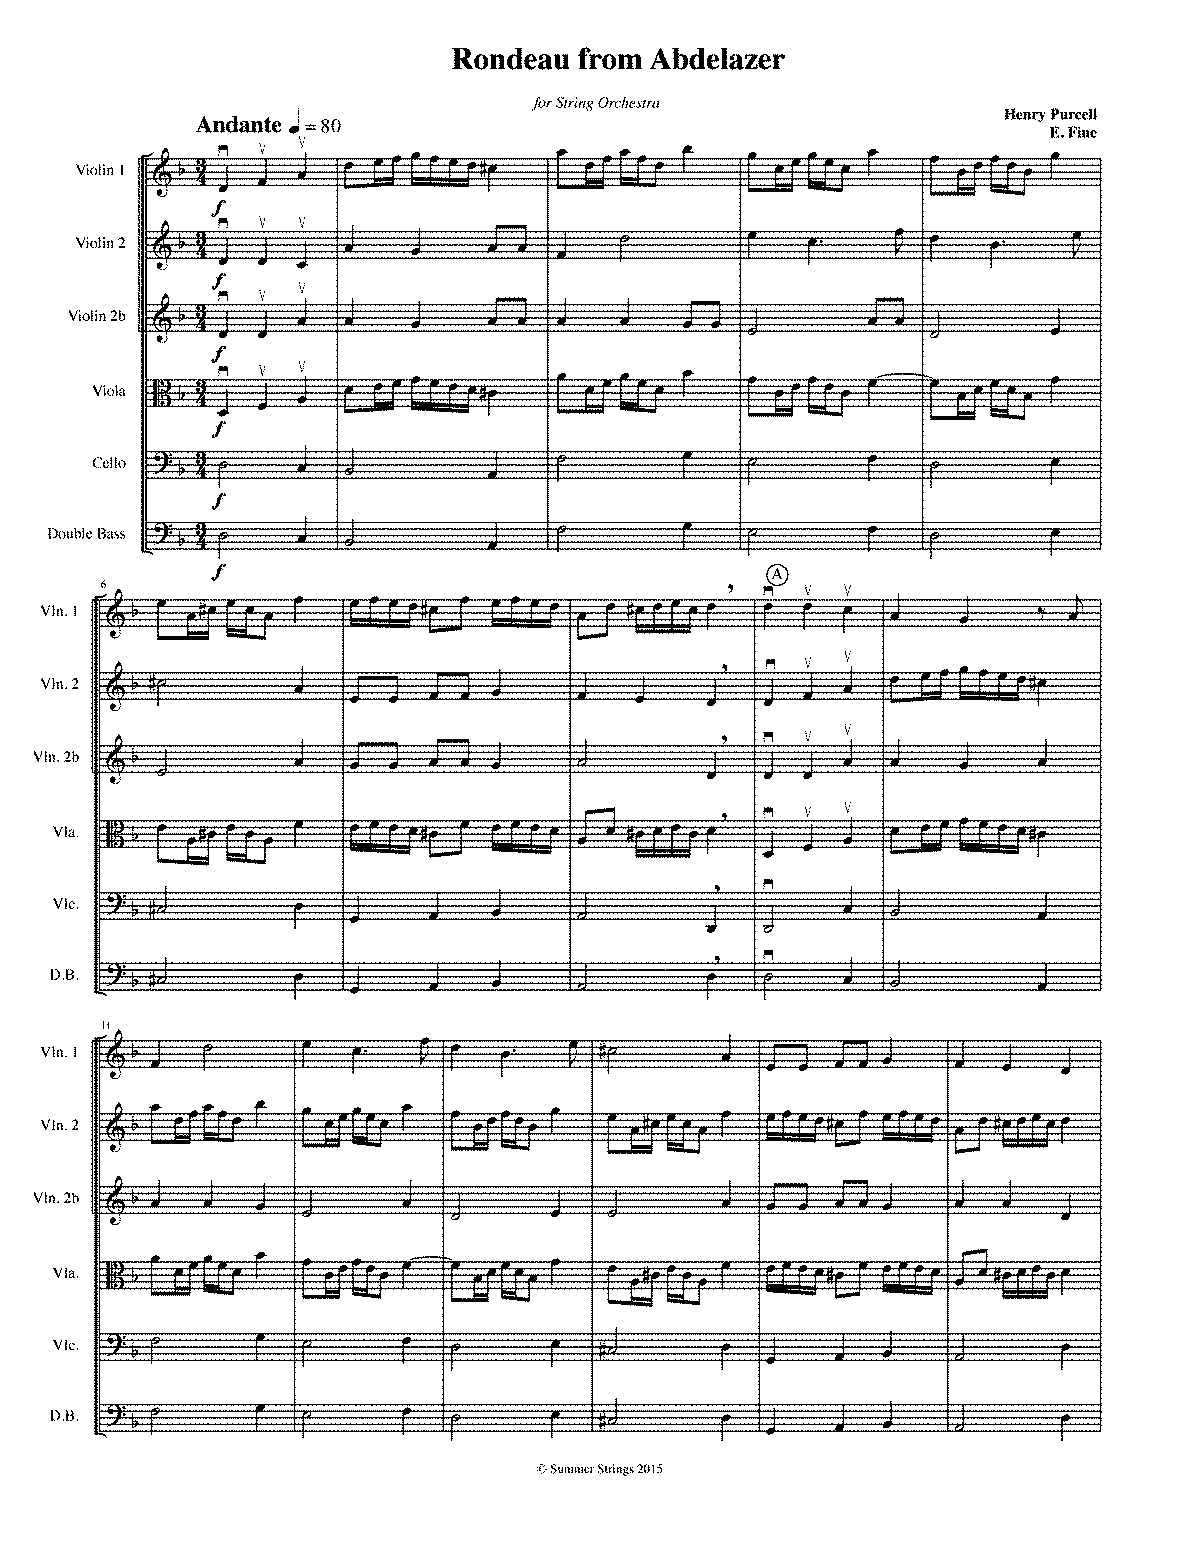 PMLP128466-Purcell Rondeau Strings Score and Parts.pdf